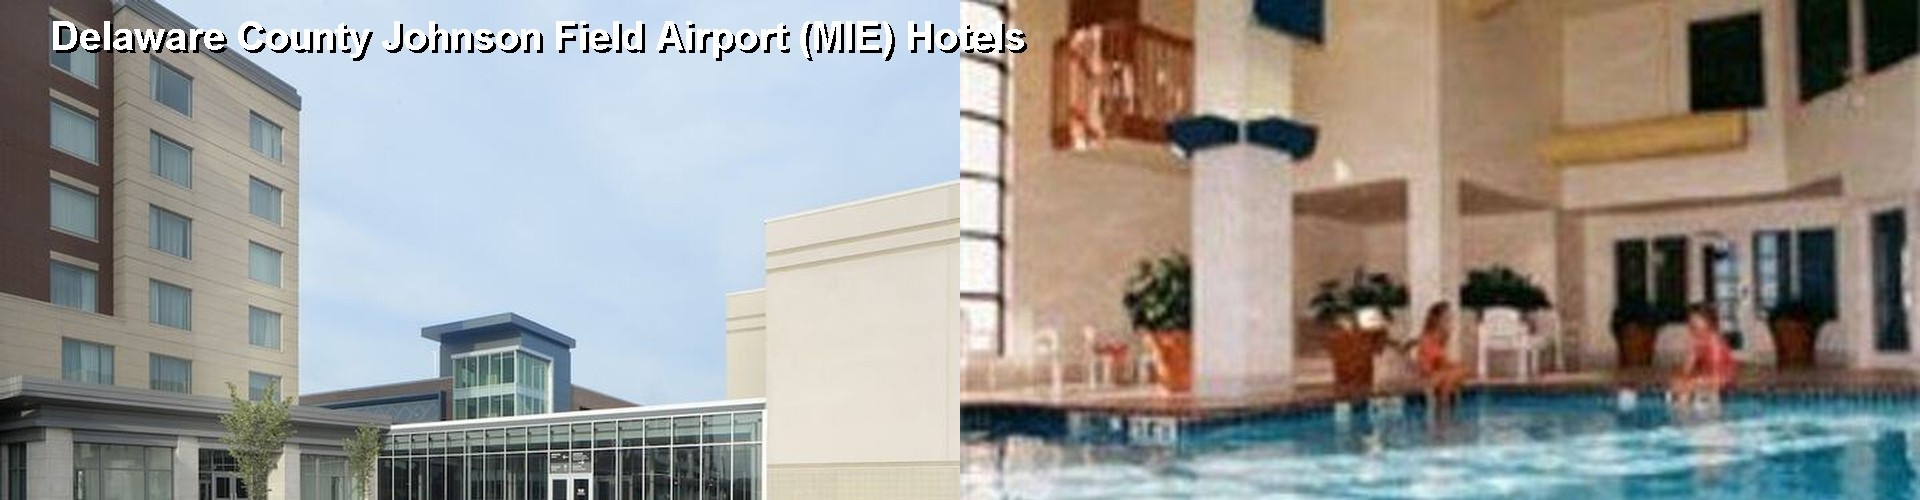 5 Best Hotels near Delaware County Johnson Field Airport (MIE)